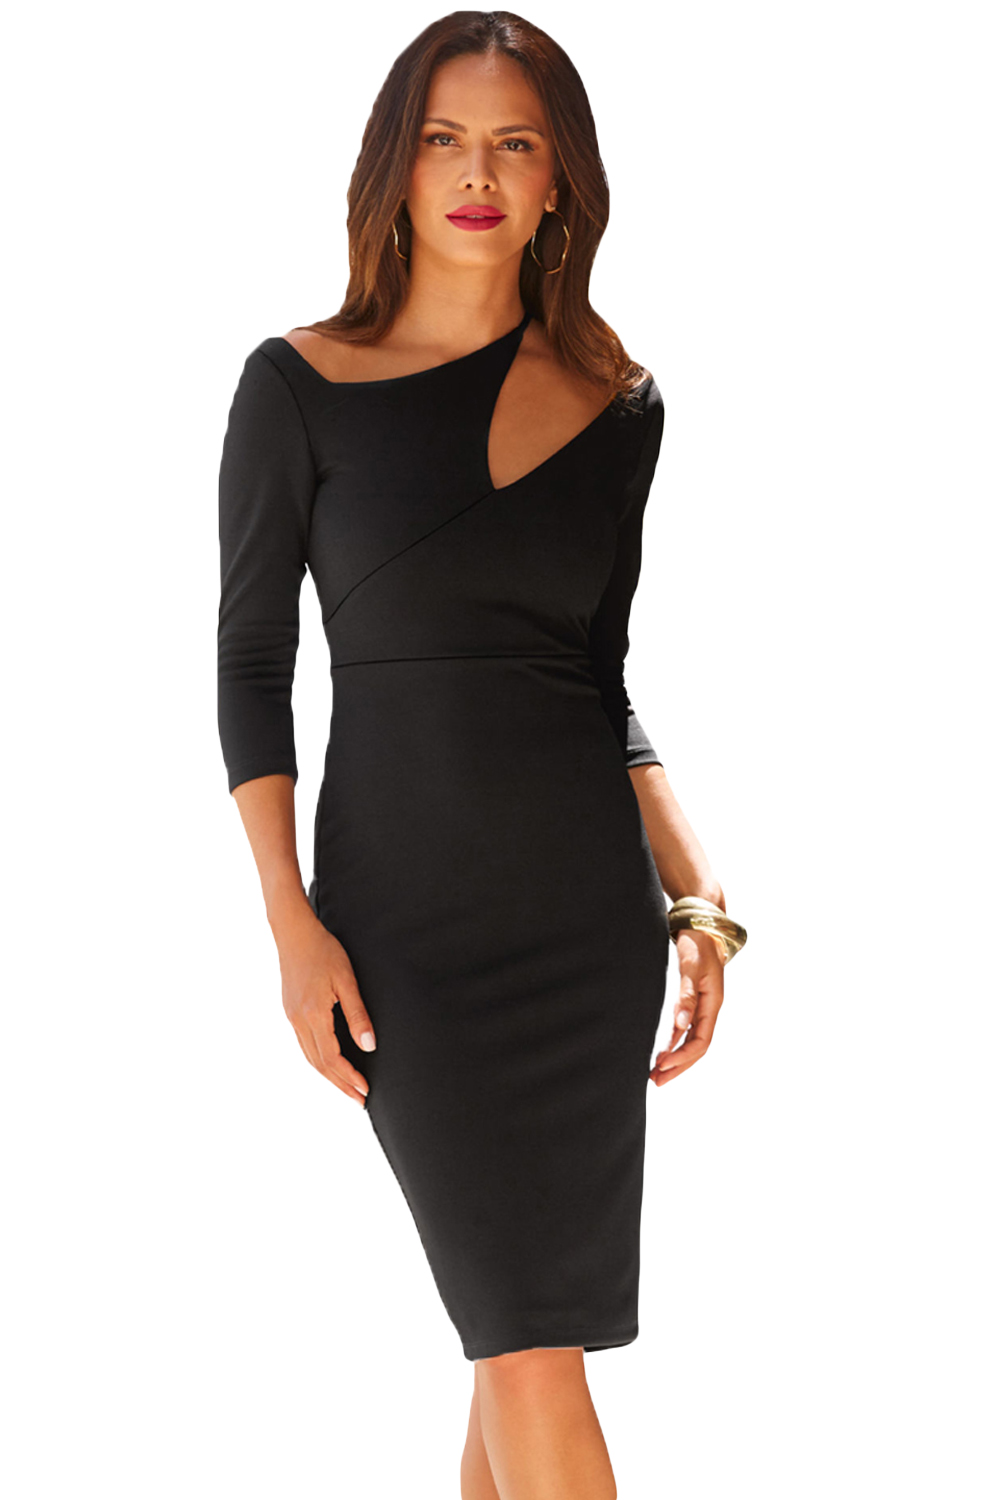 Black Asymmetric Cutout Shoulder Bodycon Midi Dress